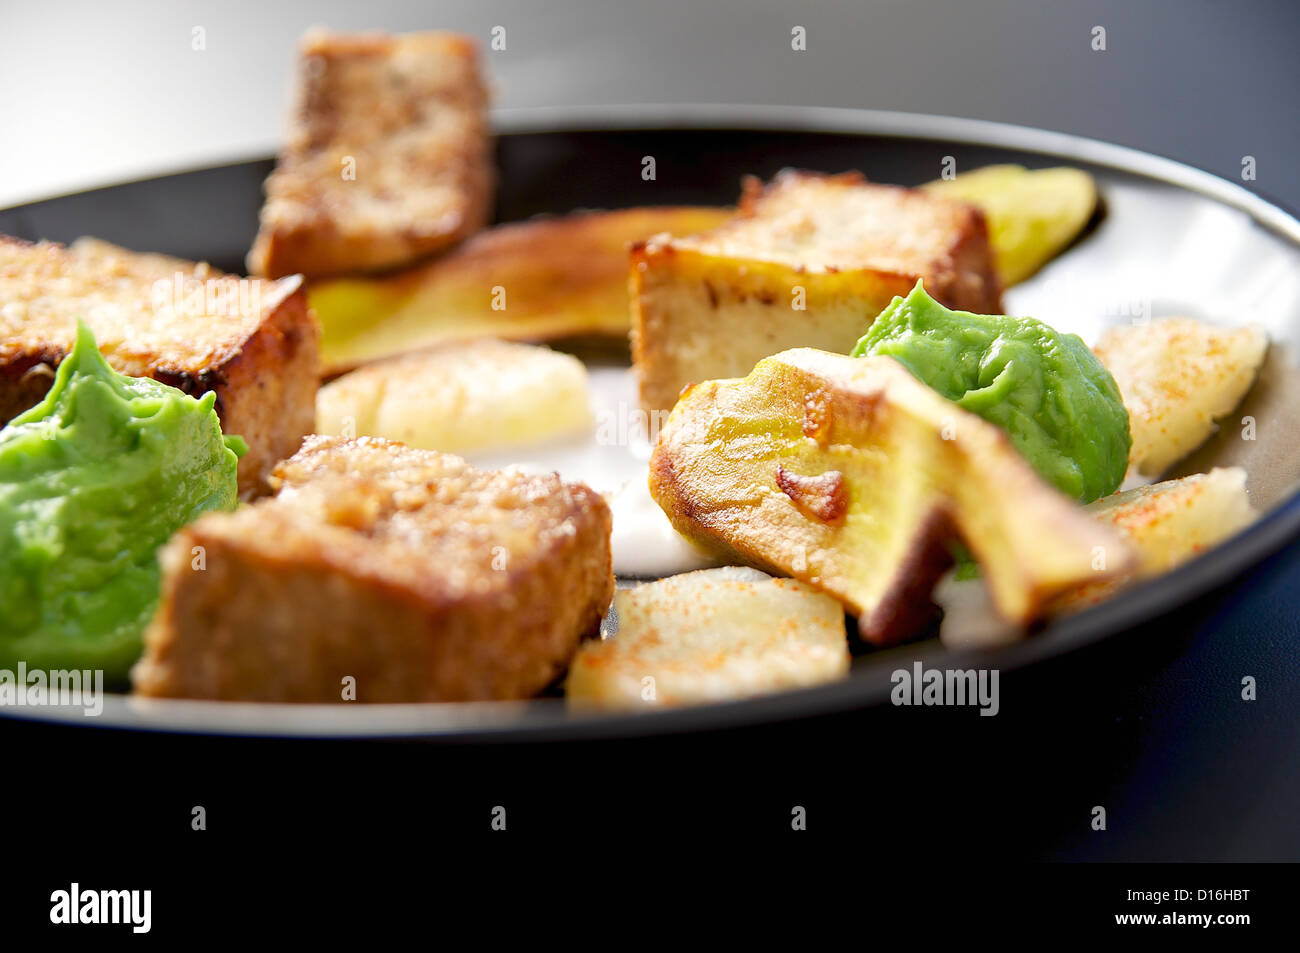 Tofu Medallions with Chili Dusted Pineapple, Avocado Cream and Browned Plantain. - Stock Image